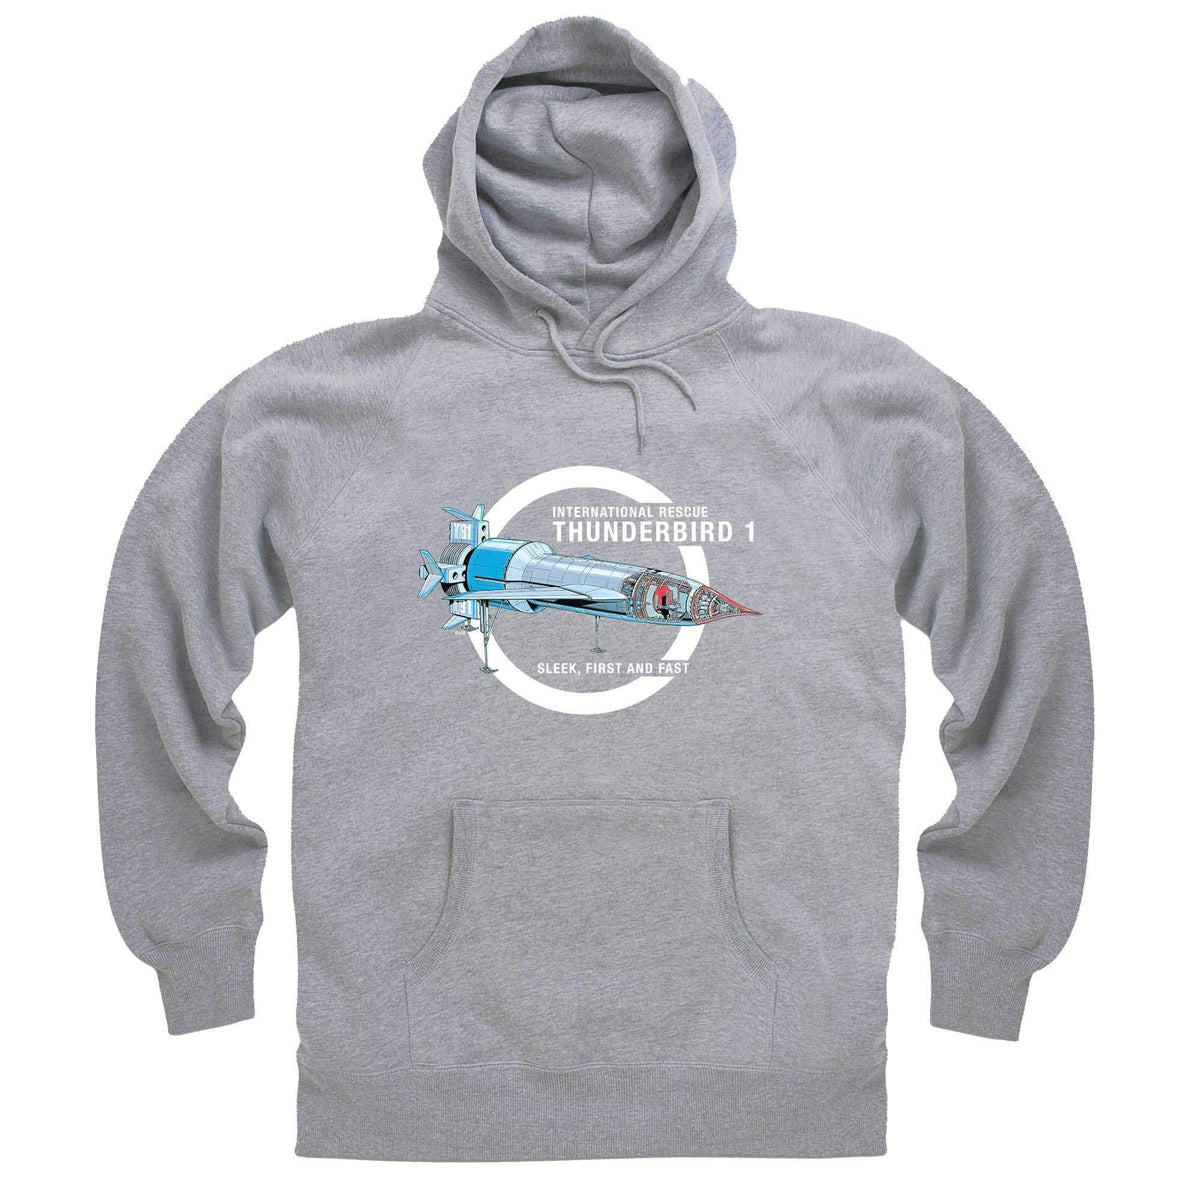 Thunderbirds: Thunderbird 1 Cutaway Hoodie [Official & Exclusive] - The Gerry Anderson Store